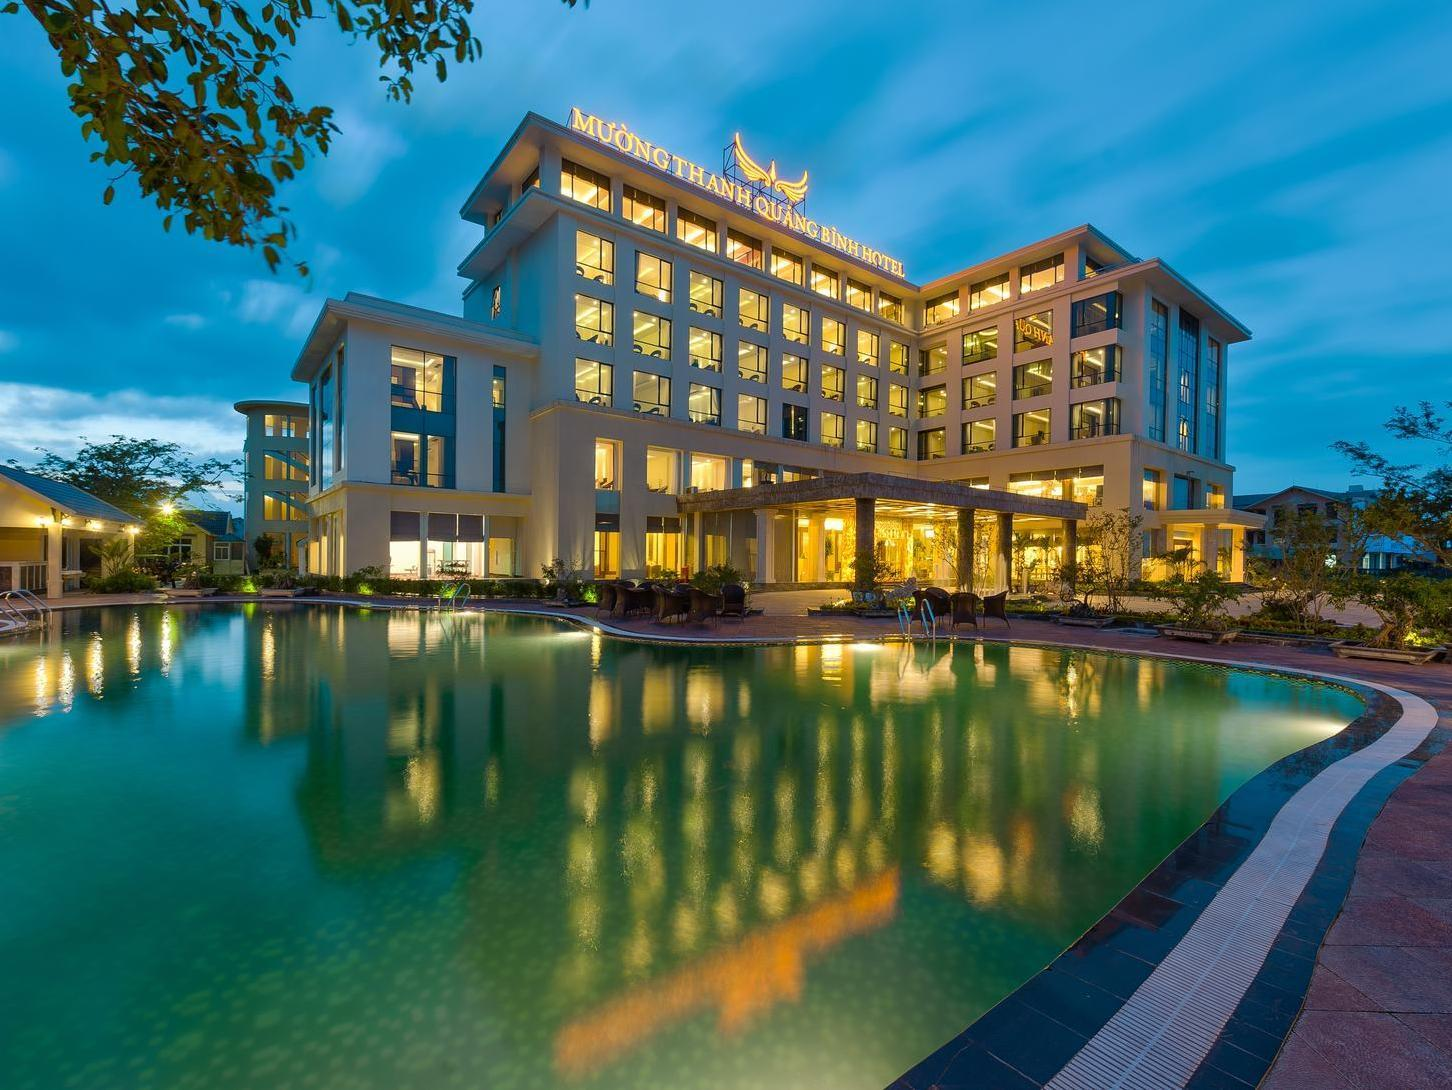 Muong Thanh Quang Binh Hotel